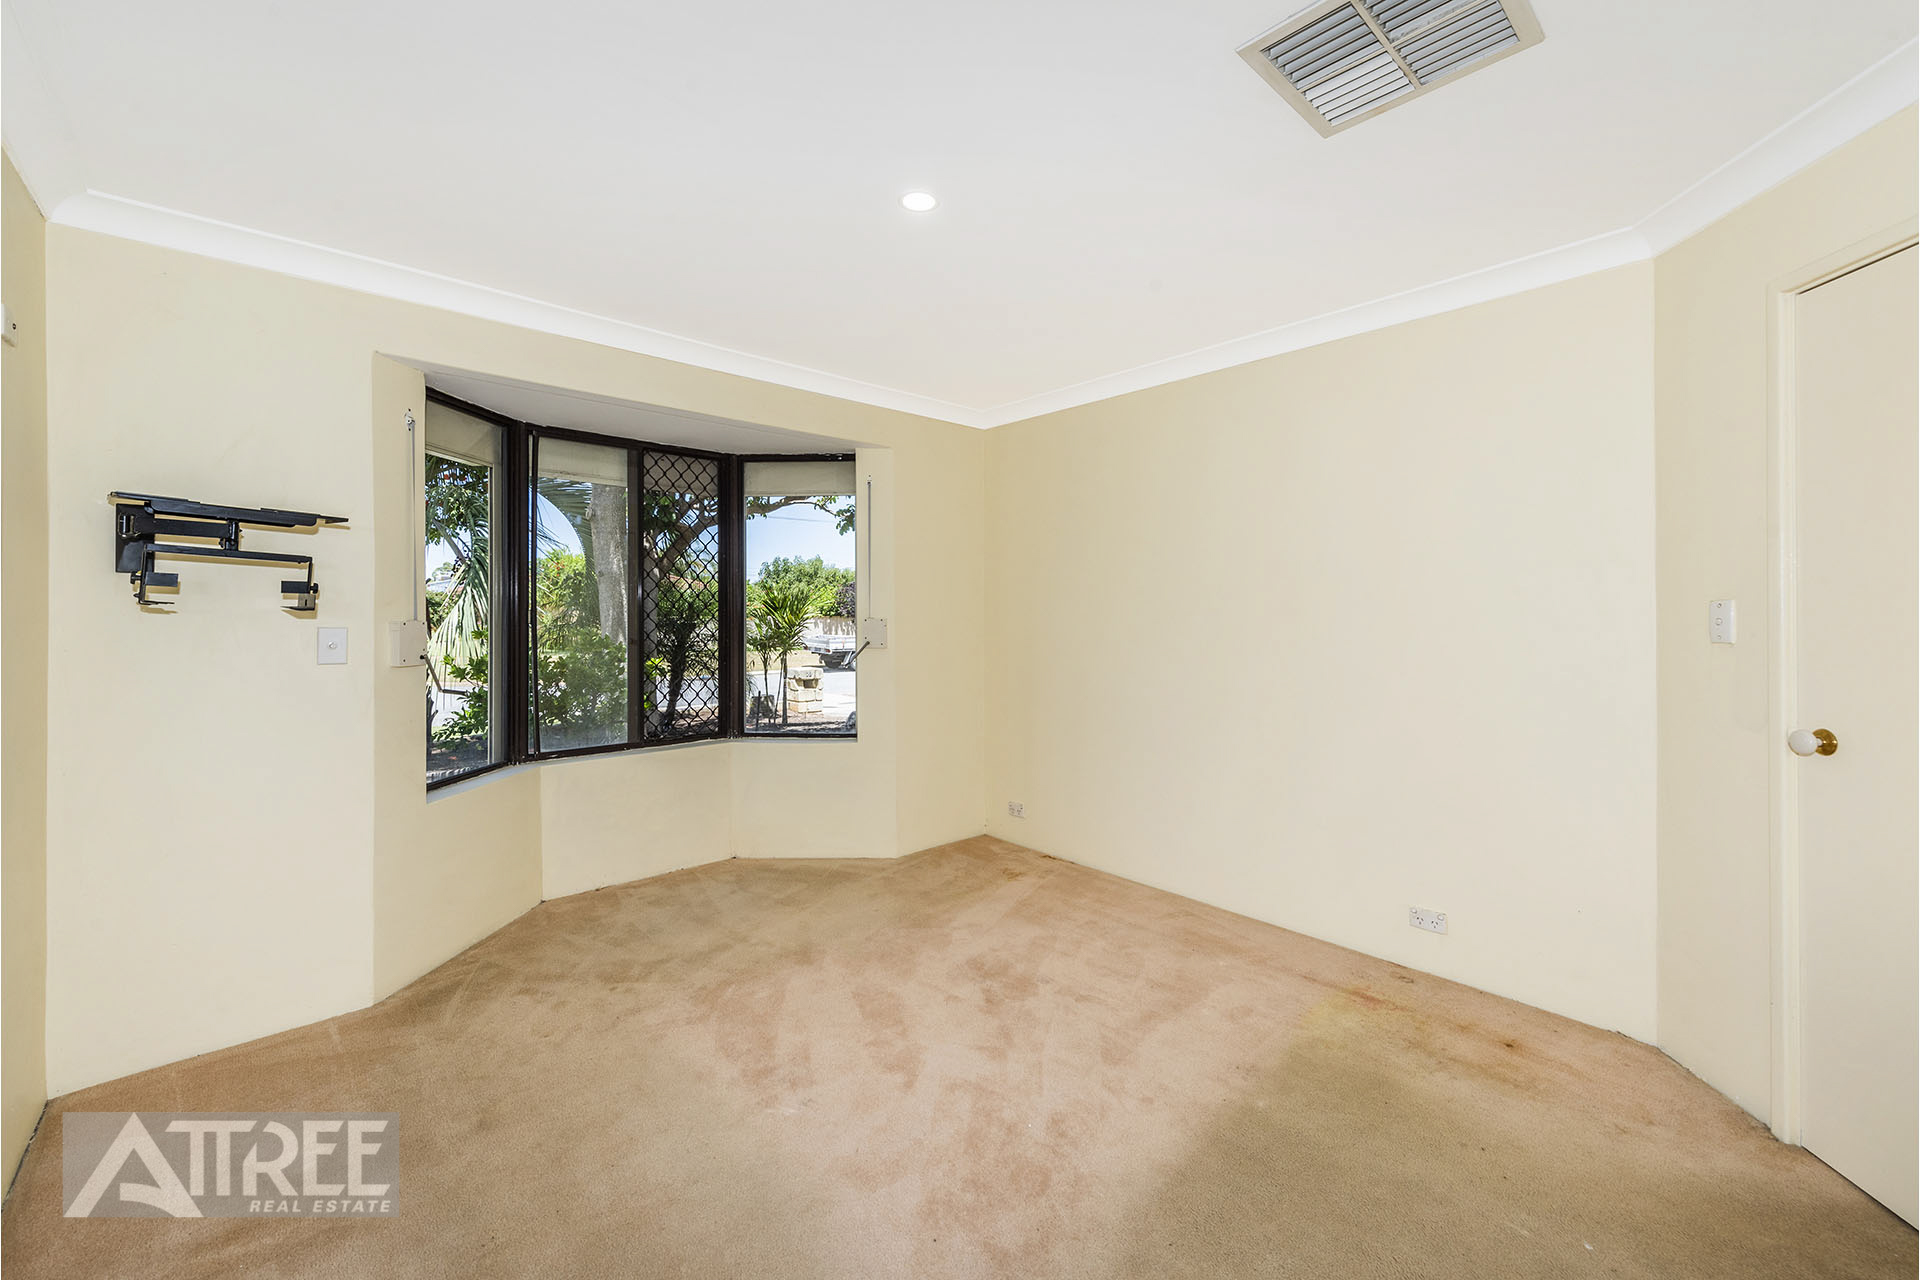 Property for sale in GOSNELLS, 23 Sandridge Street : Attree Real Estate